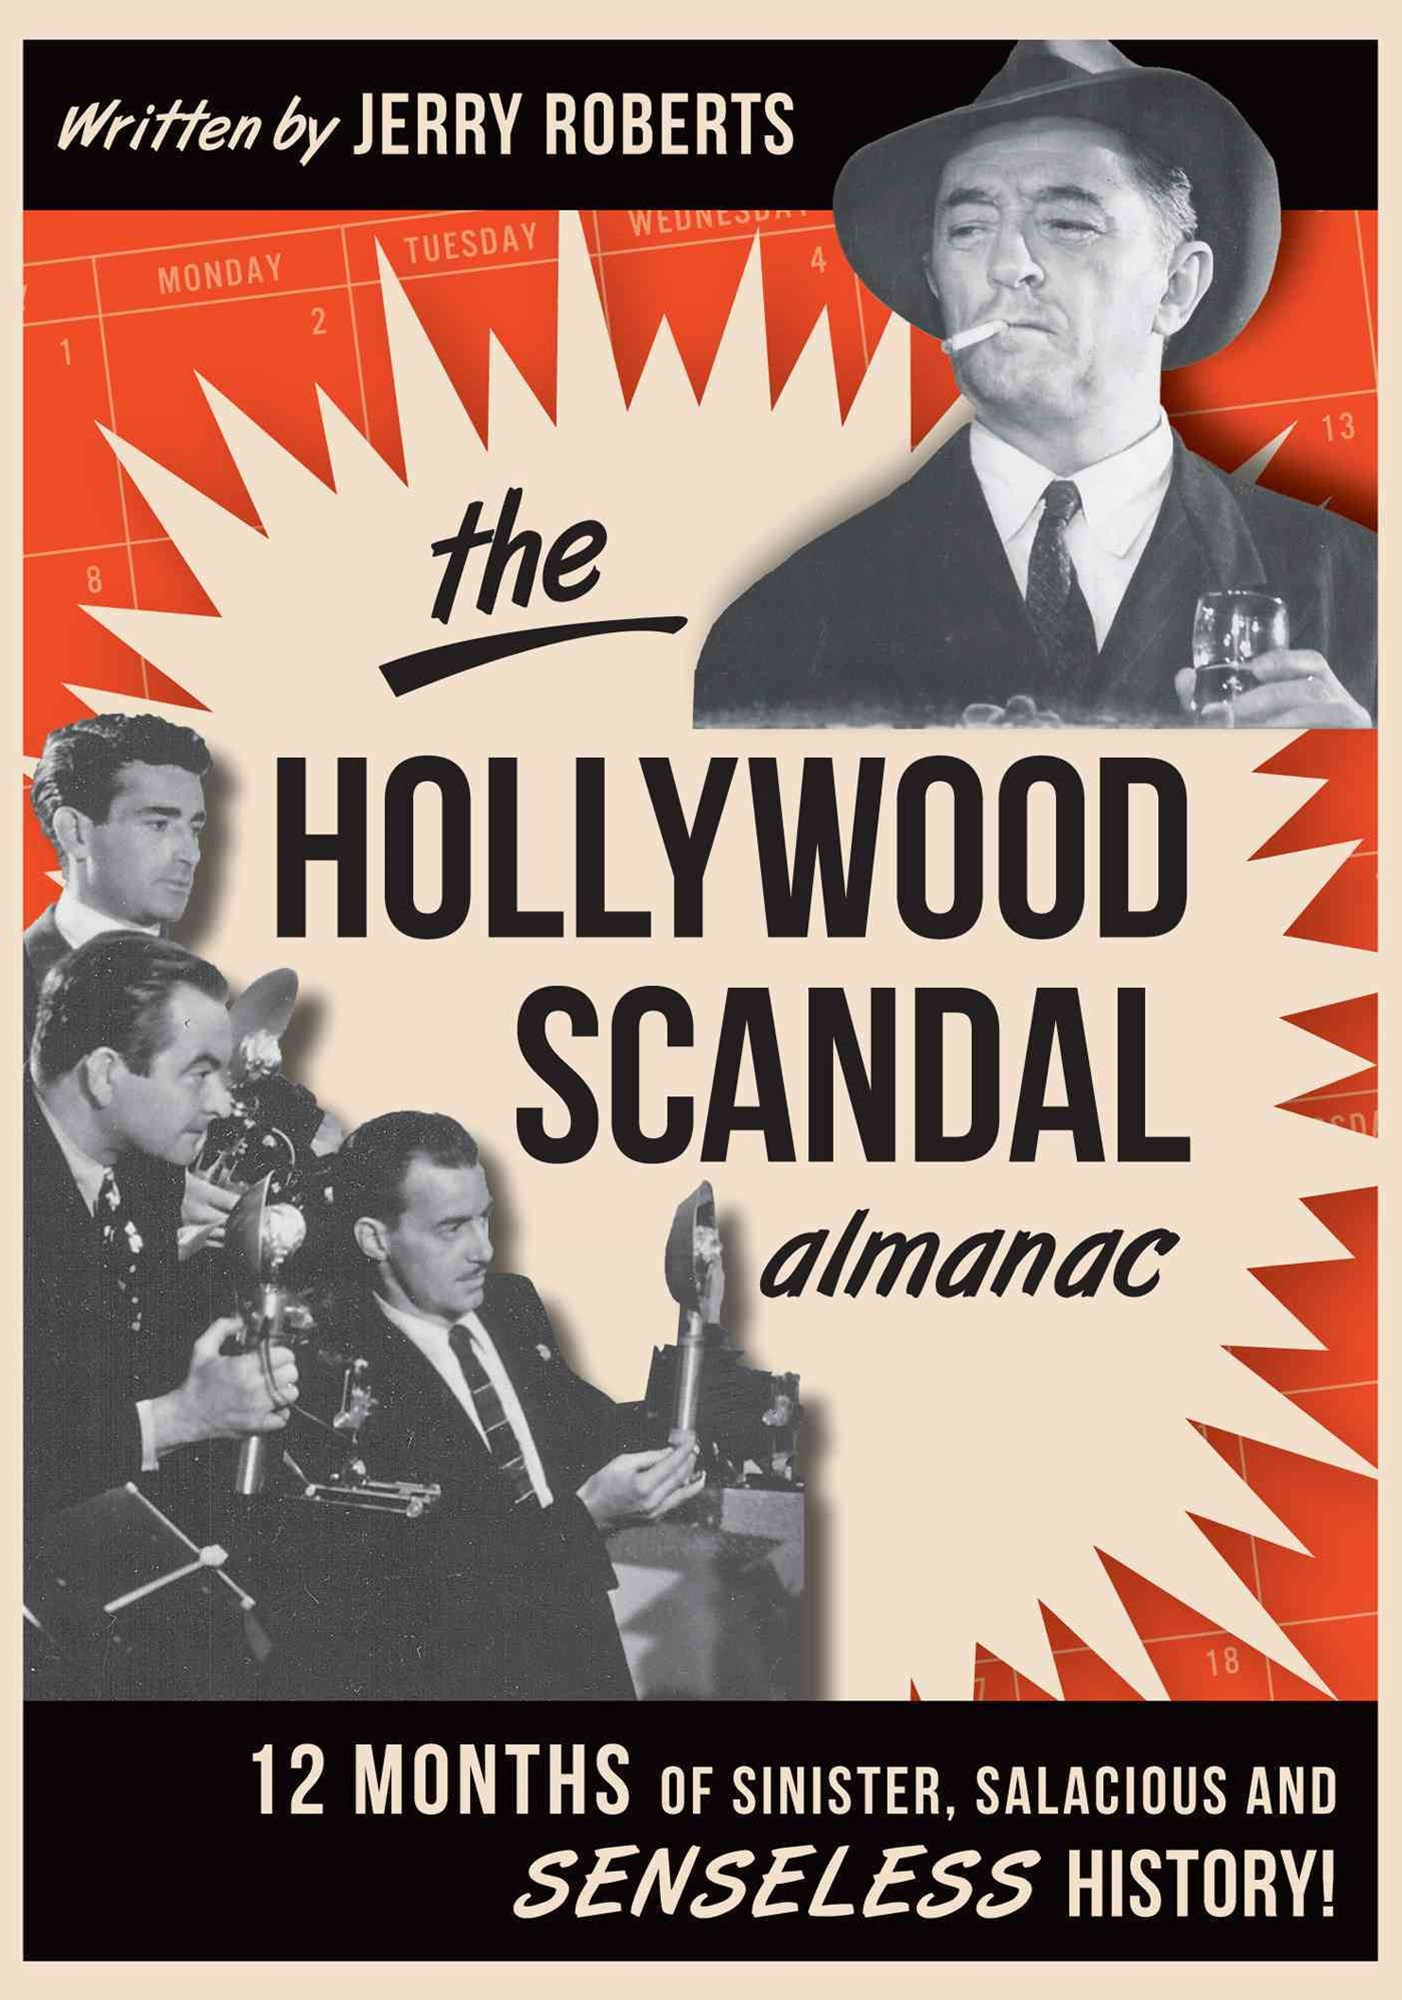 The Hollywood Scandal Almanac